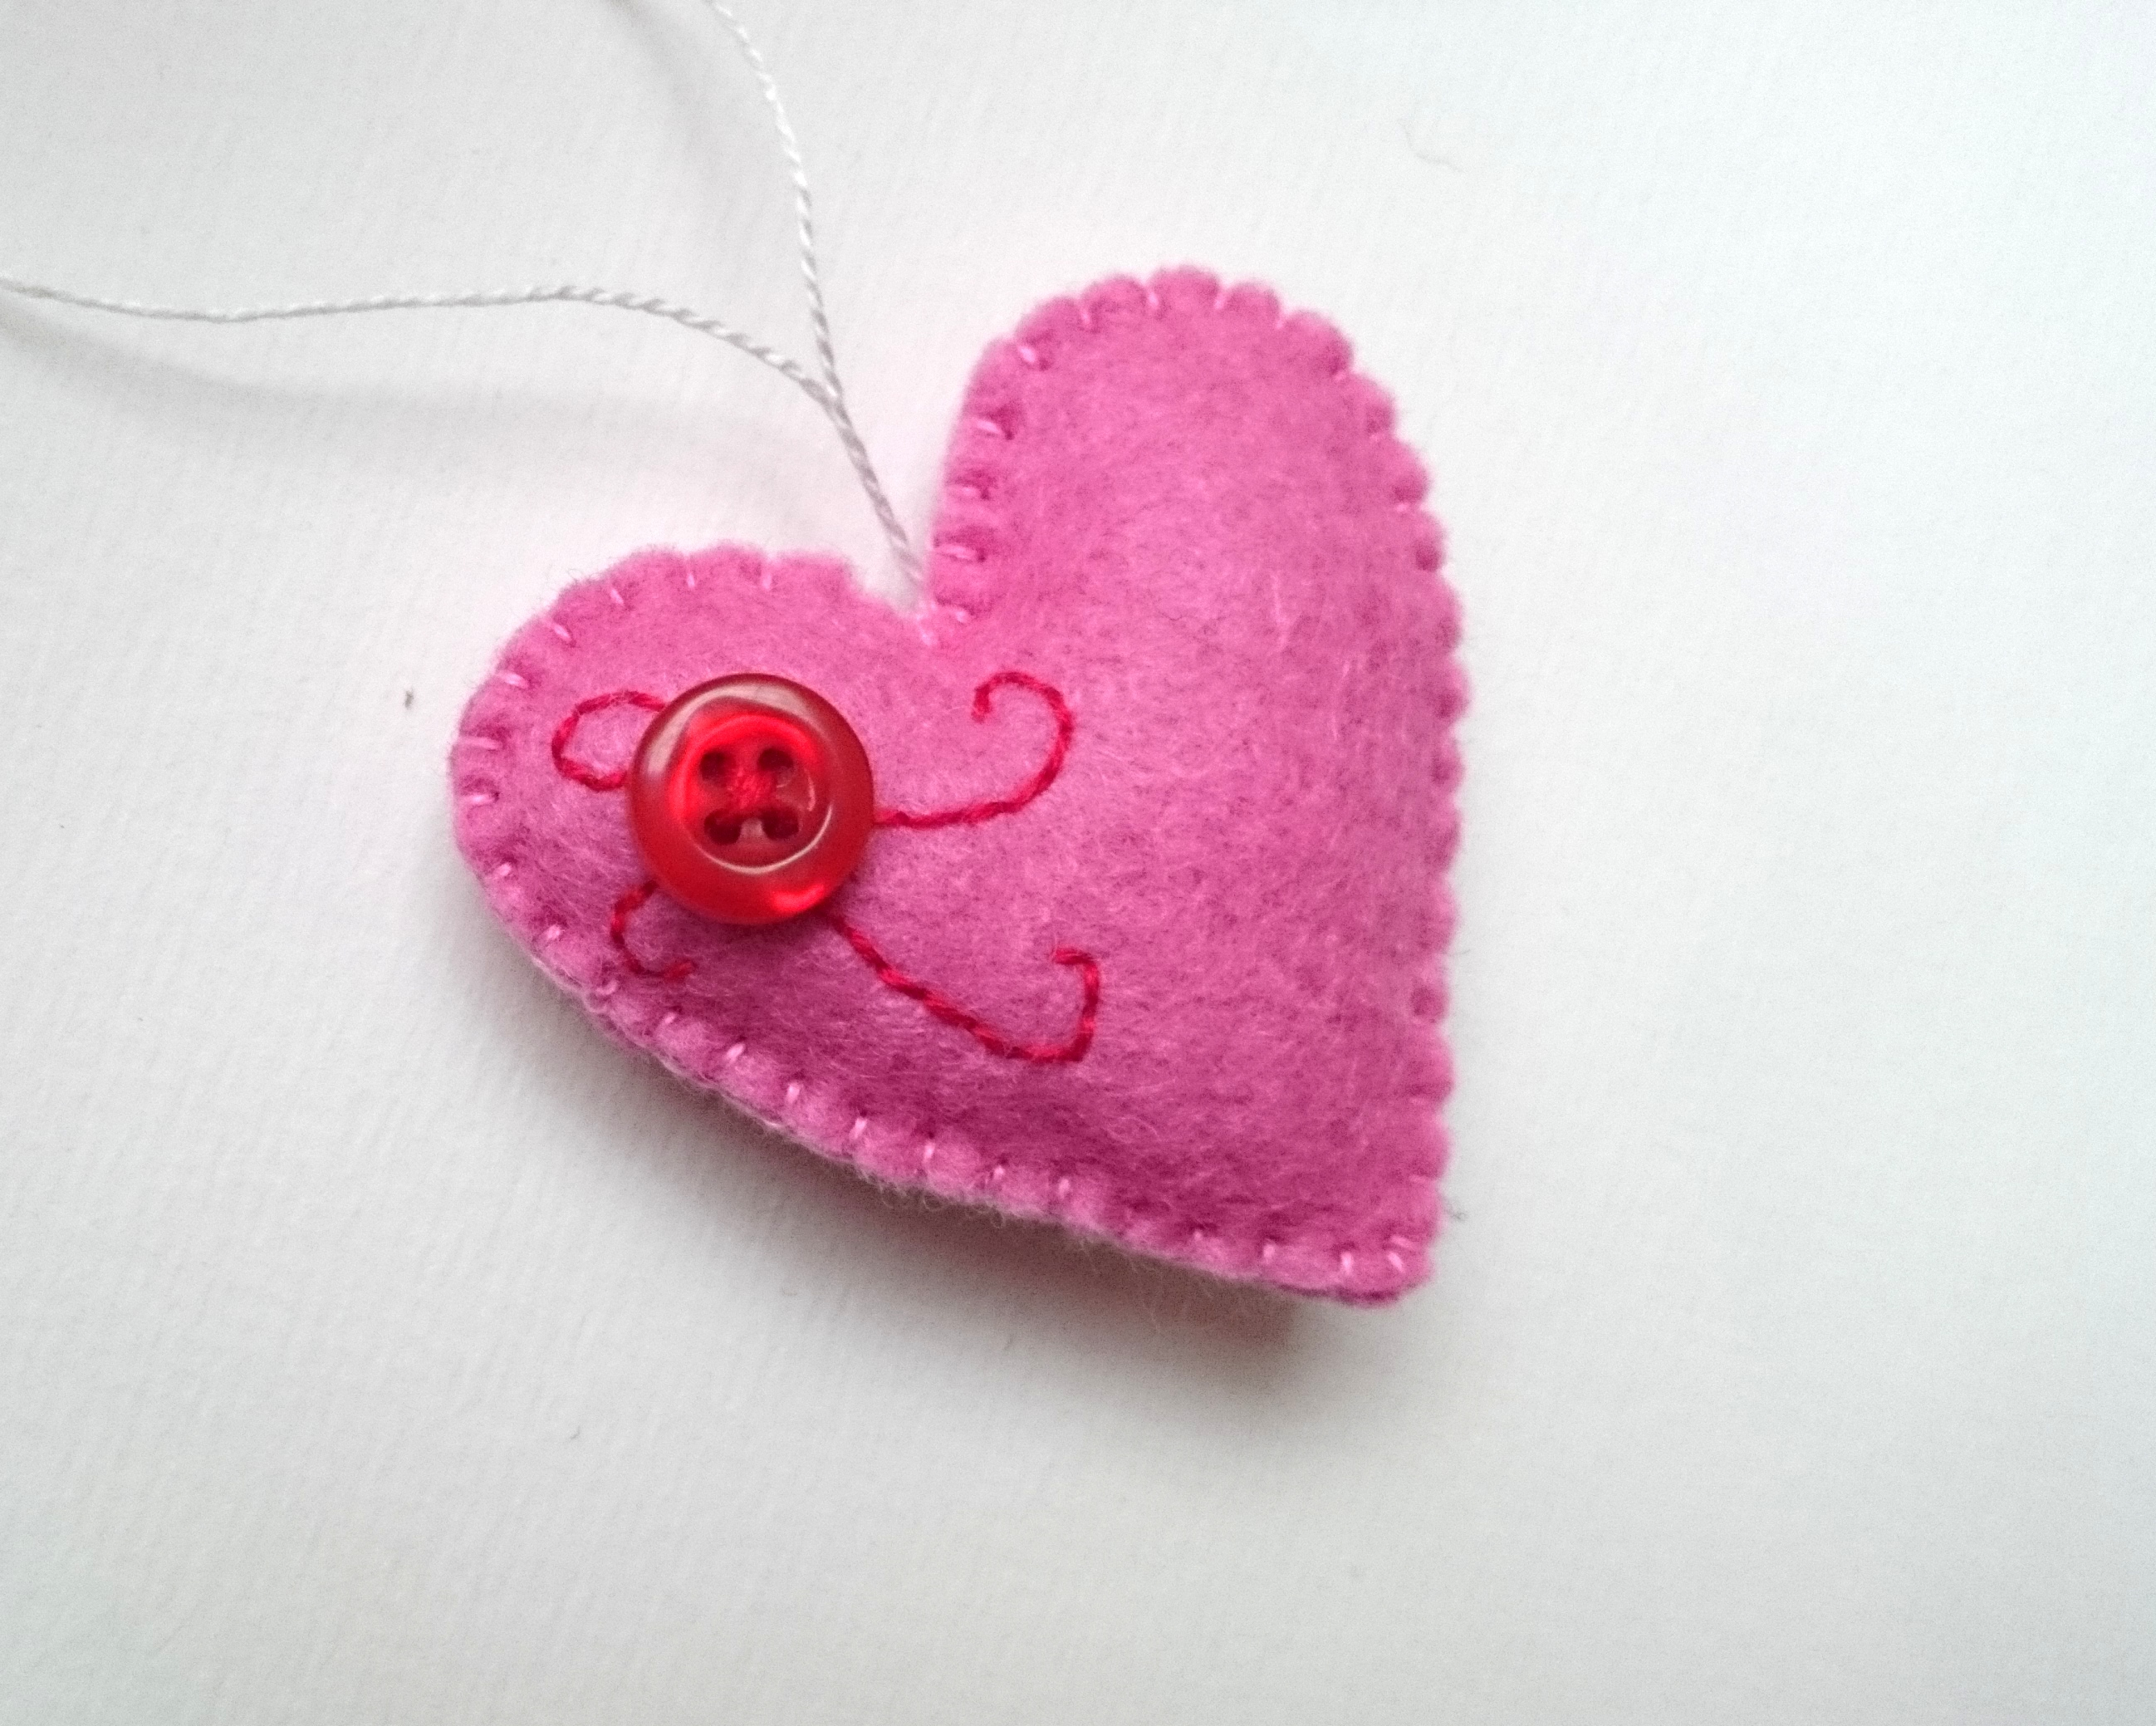 pink-felt-heart-with-button-04.jpg